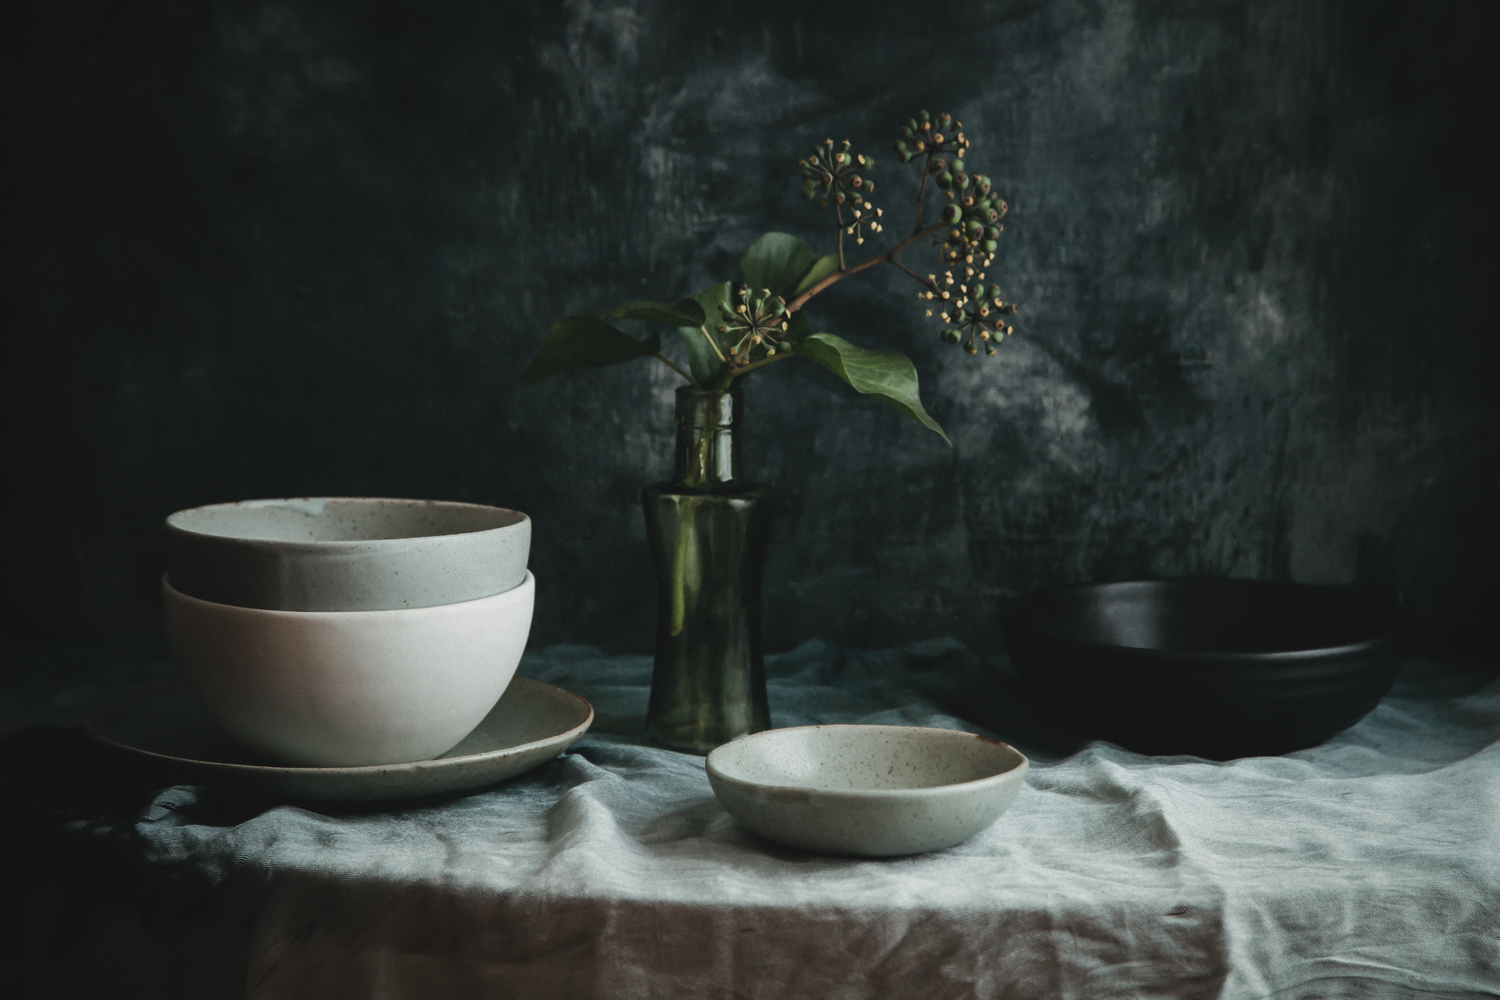 https://i2.wp.com/digital-photography-school.com/wp-content/uploads/2019/09/Still-Life-Bowls-Edit.jpg?resize=1500%2C1000&ssl=1